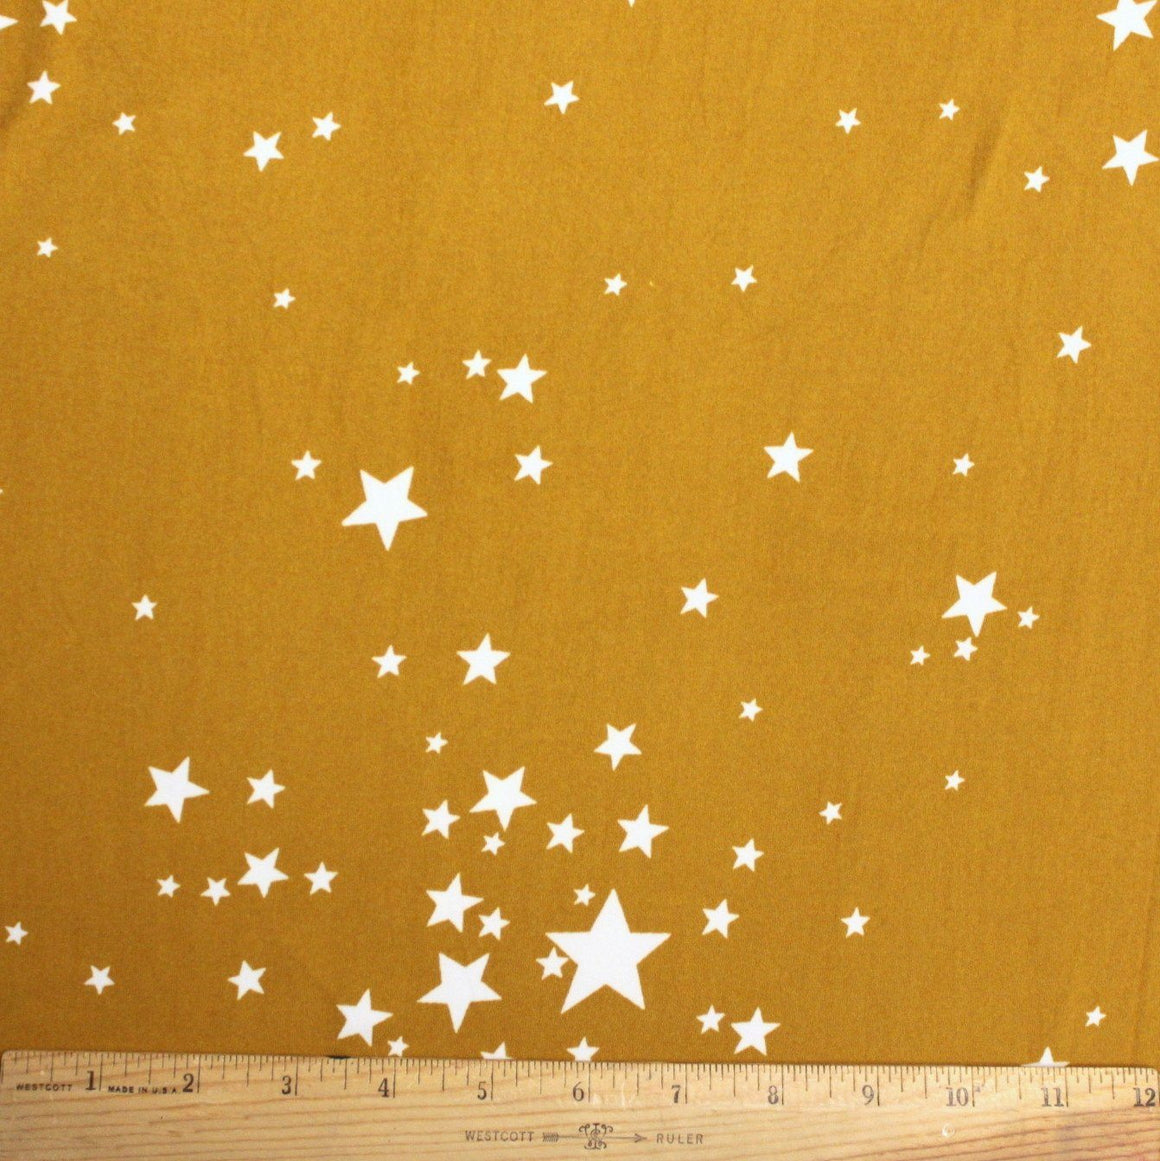 Mustard Yellow and White Geometric Star Double Brushed Poly Spandex Knit, 1 yard